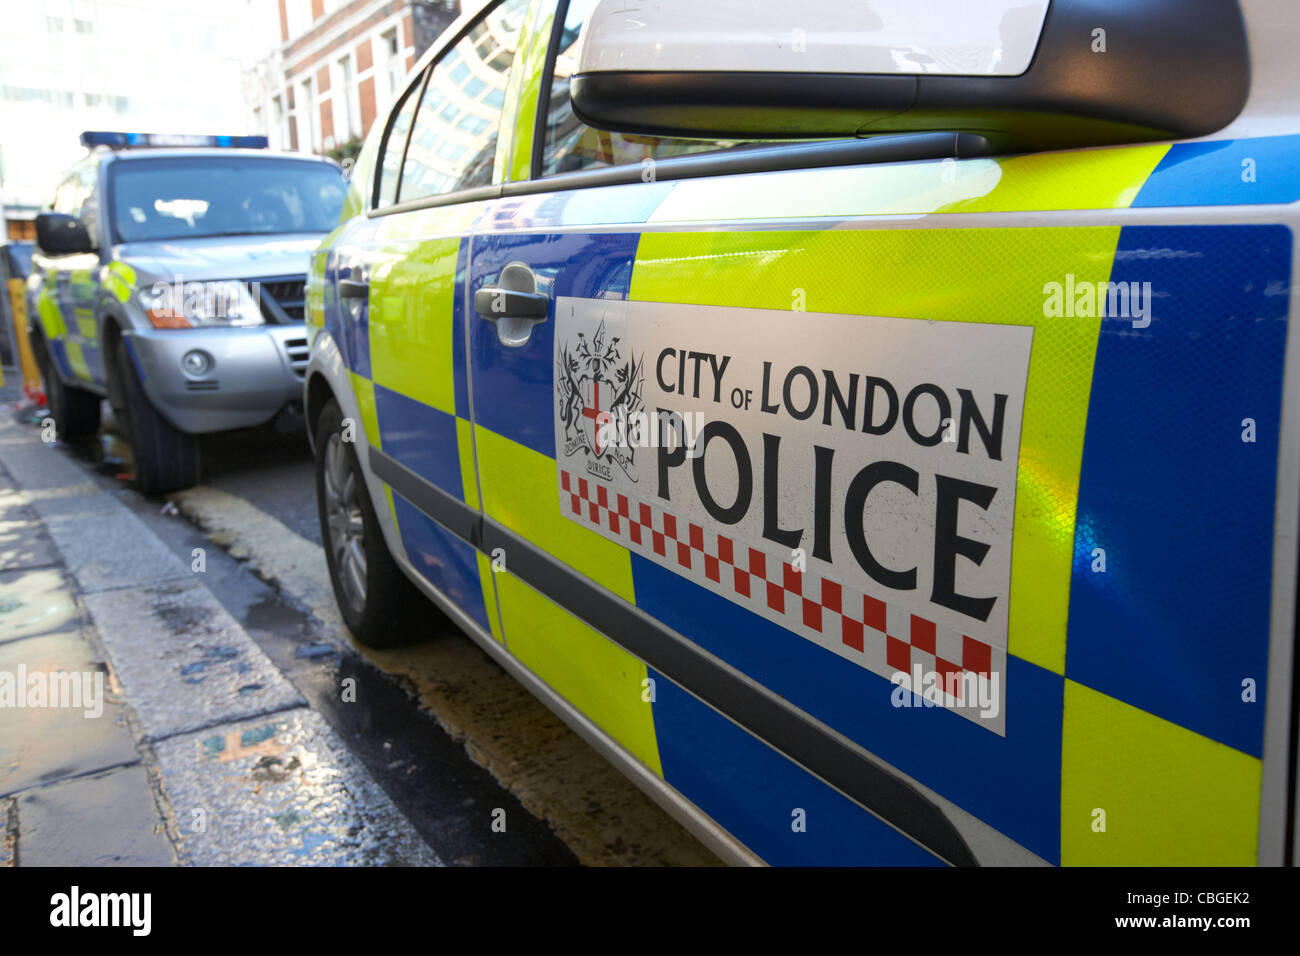 city of london police vehicle with battenburg chequered livery london england uk united kingdom - Stock Image